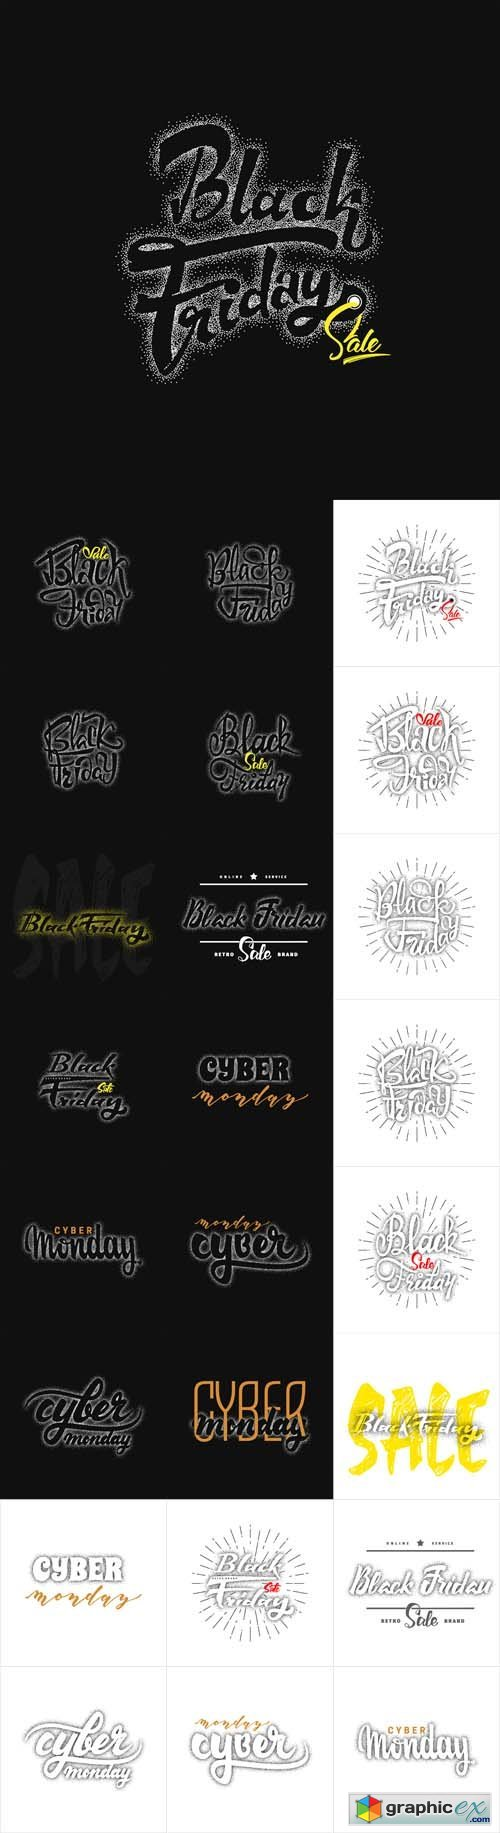 Cyber Monday and Black Friday Hand Lettering Text